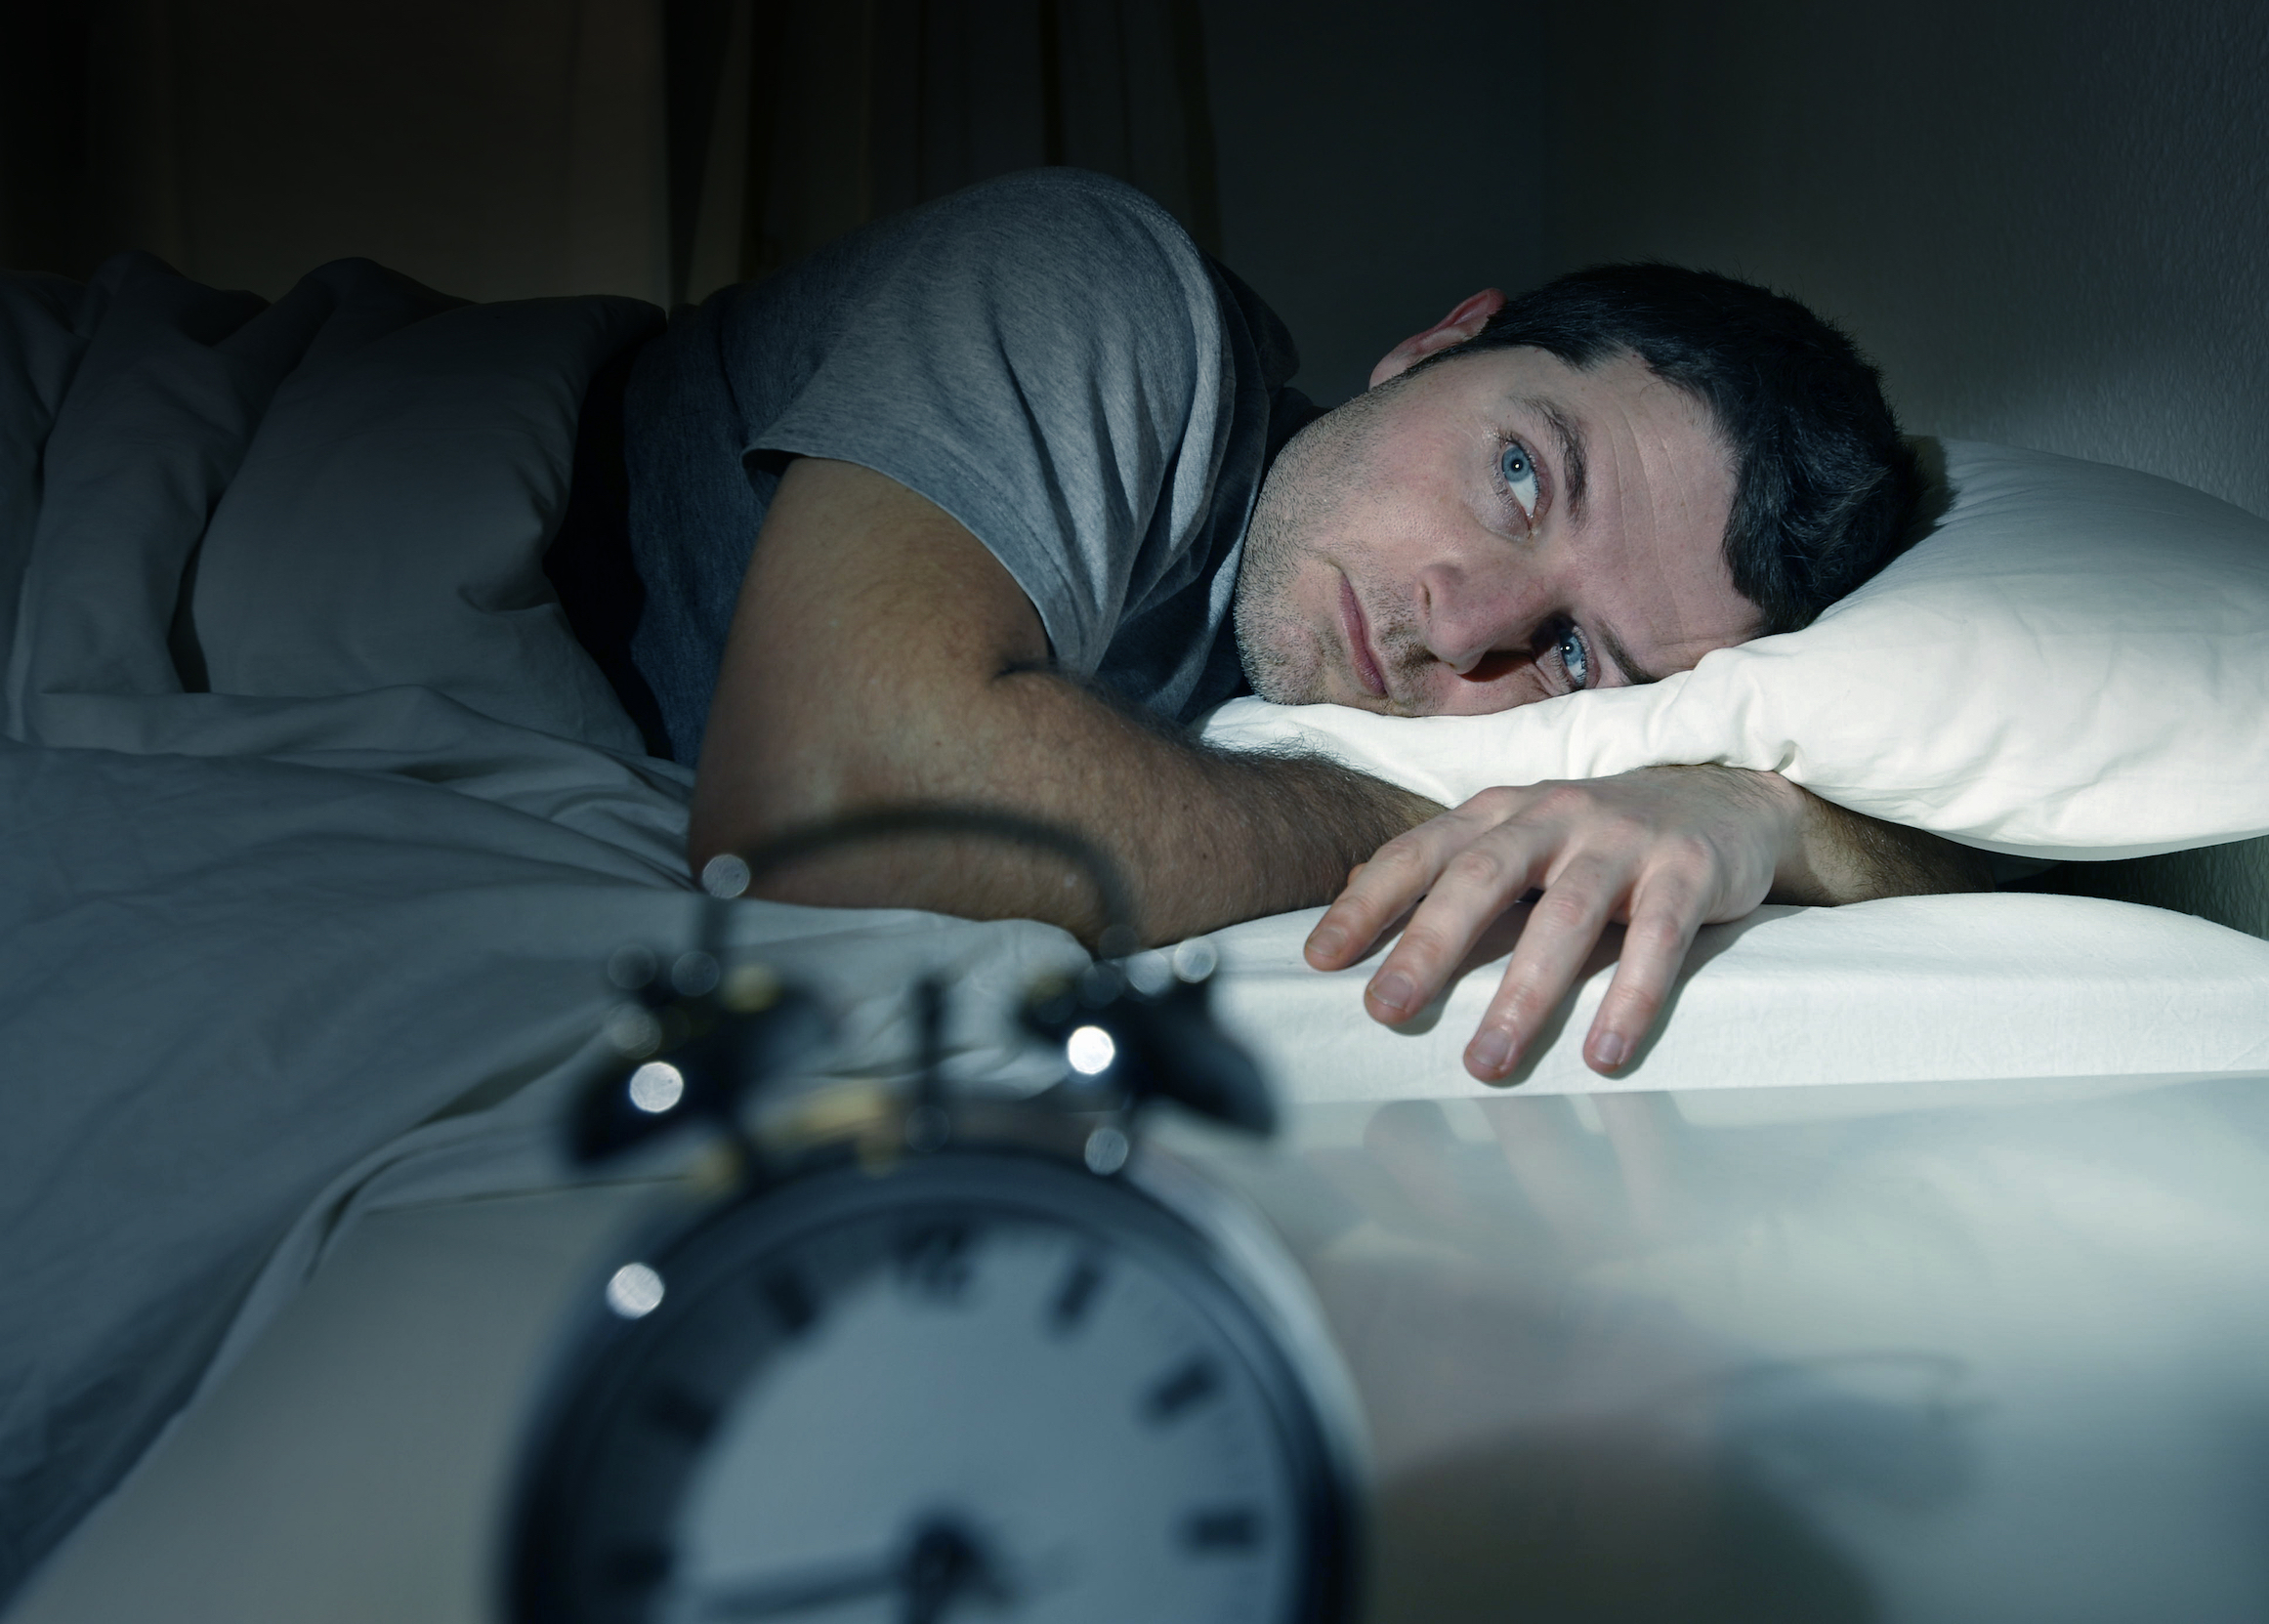 According to a new study from the European Society of Cardiology, poor sleep can lead to heart disease and stroke.